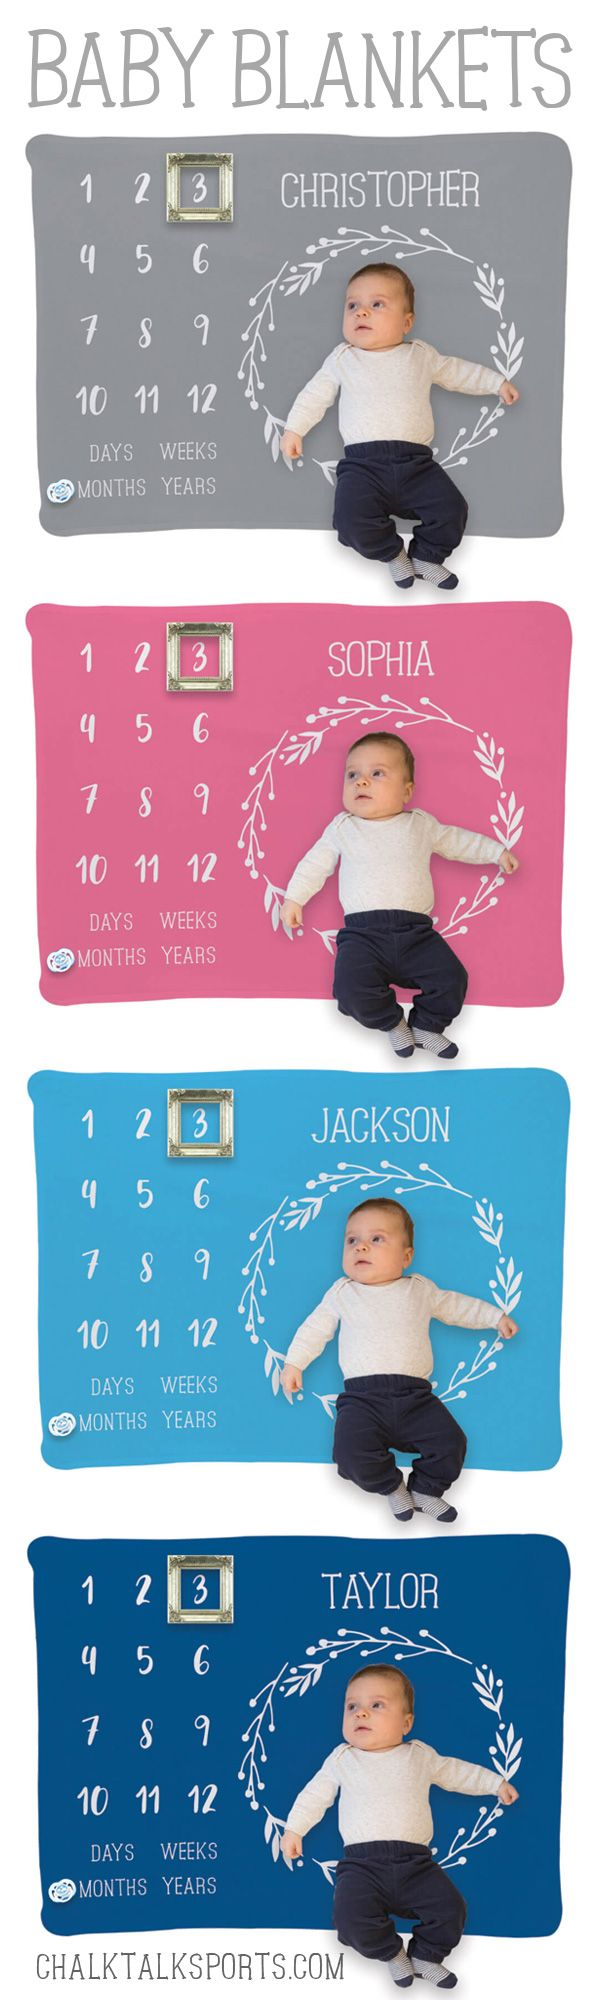 This Personalized Month Milestones baby blanket is the perfect gift for a baby shower or for new parents. Take photos of your baby's growth each month by using items like a pacifier or a small frame to indicate the age of your baby. A gift they'll treasure for years to come!